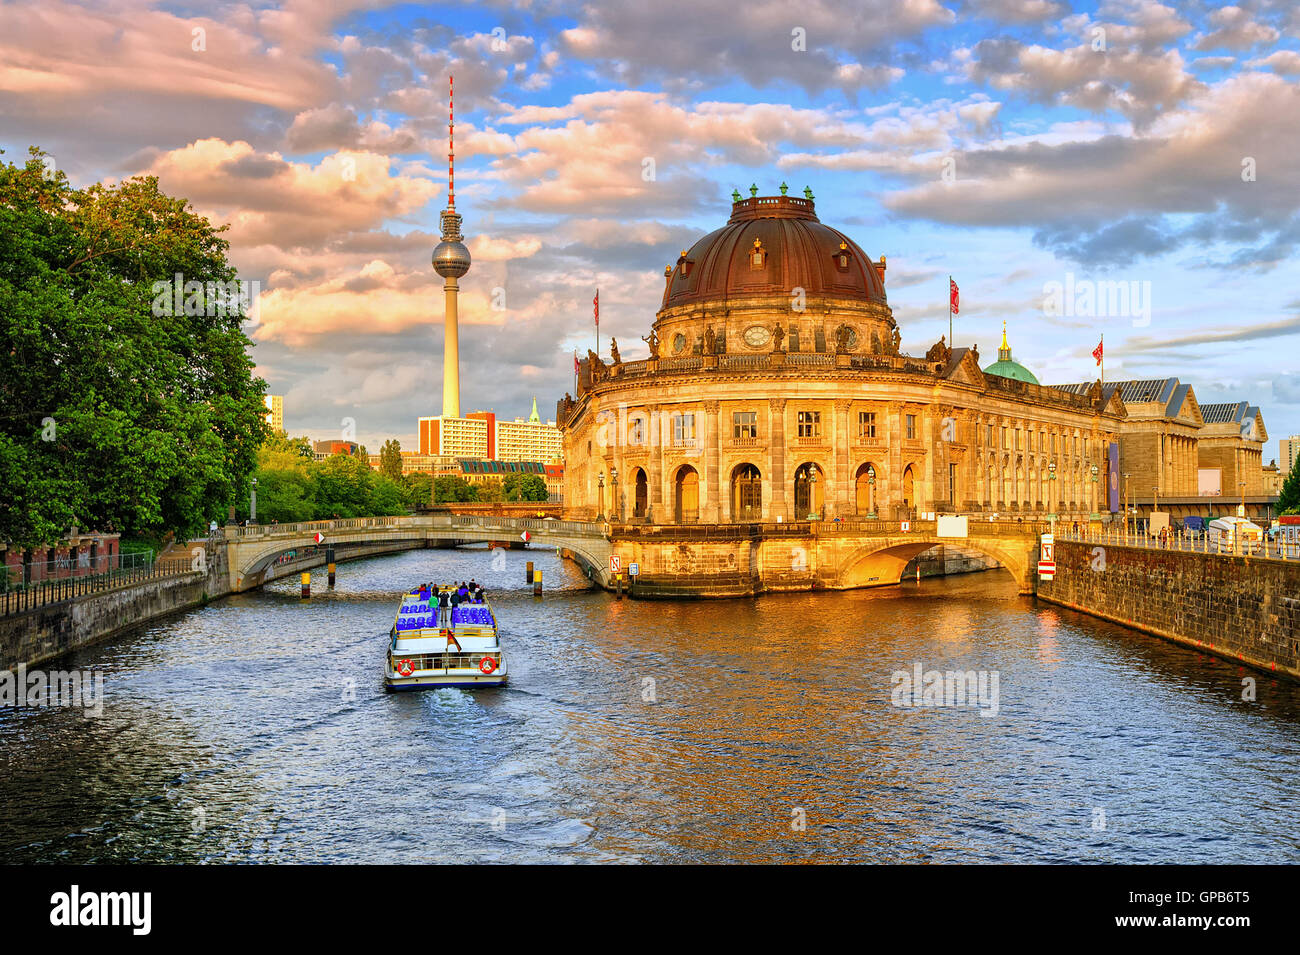 bode museum on spree river and alexanderplatz tv tower in